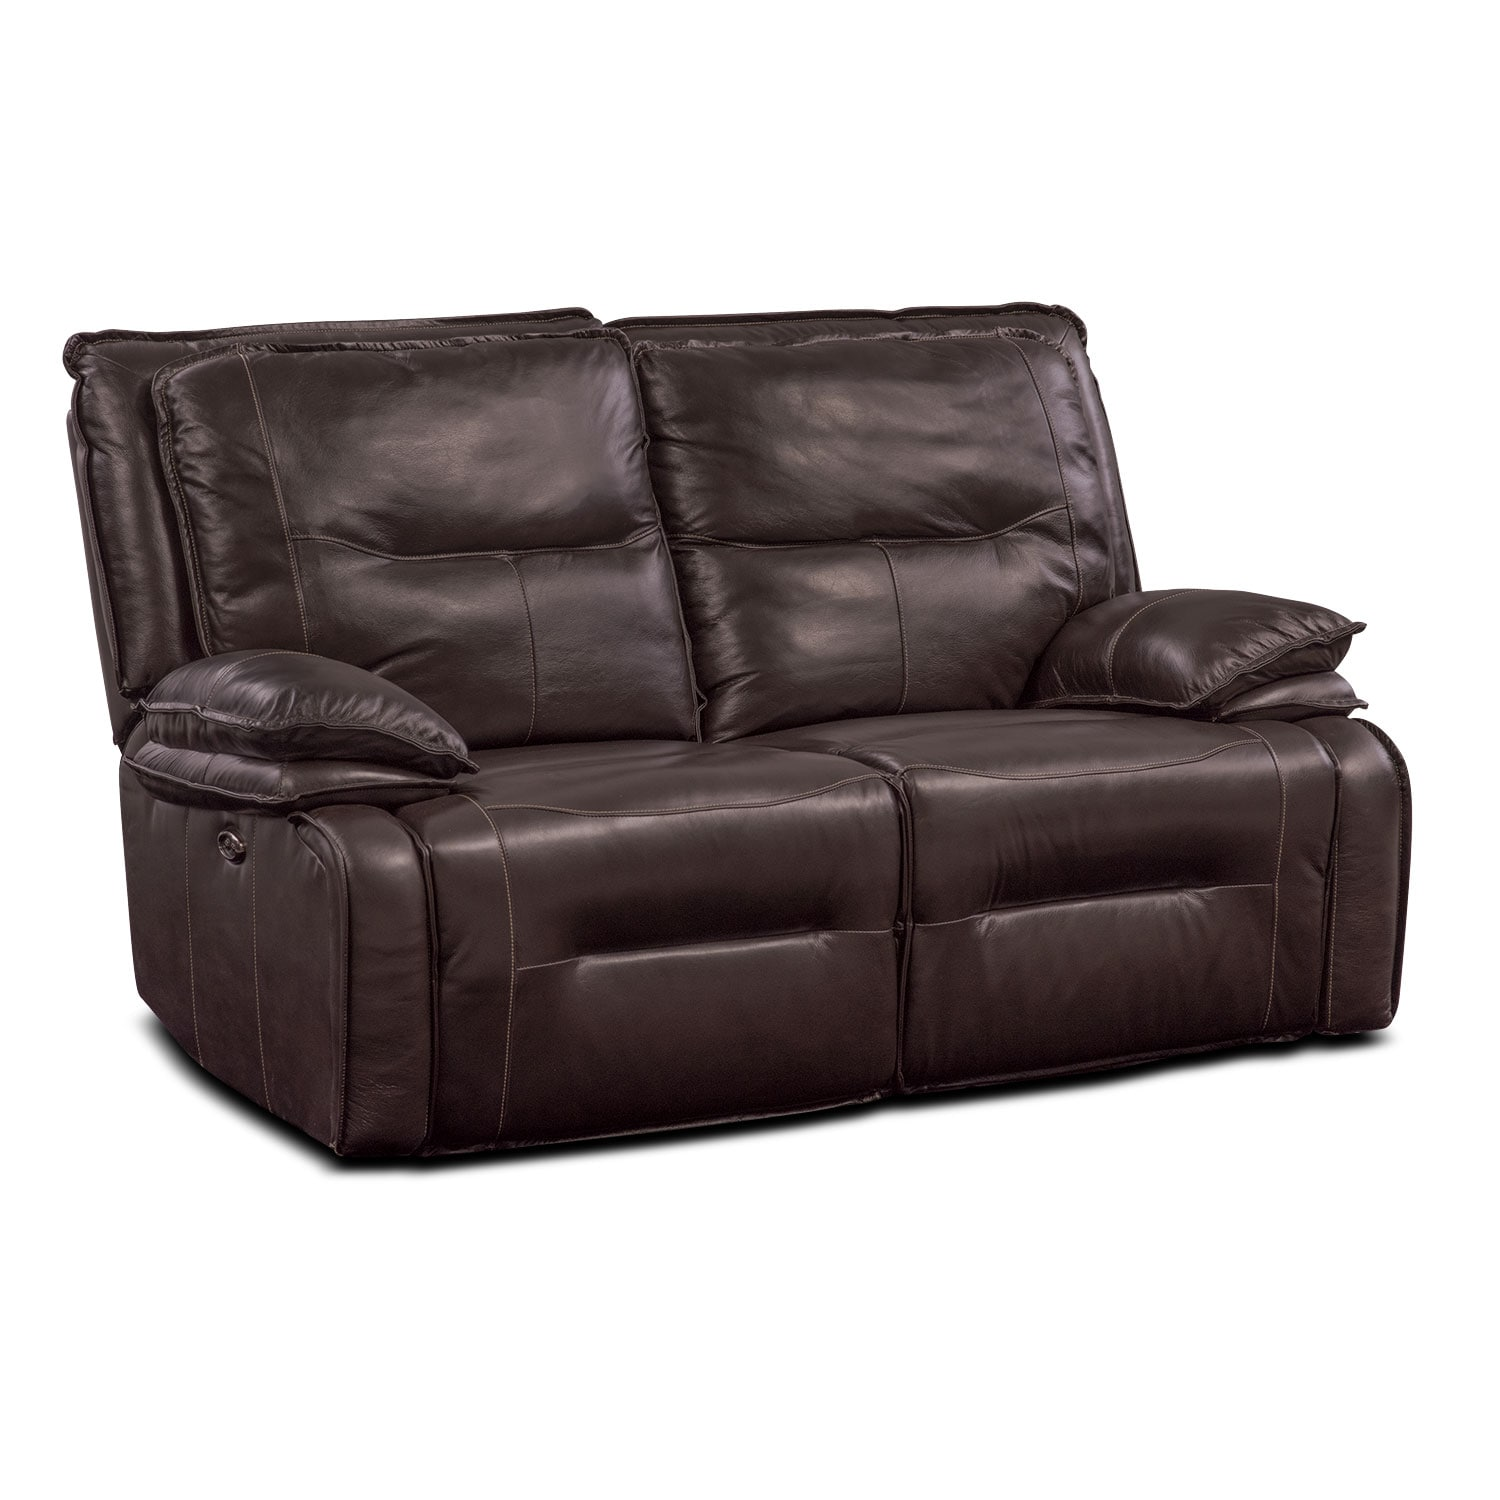 Nikki 2-Piece Power Reclining Sectional - Brown